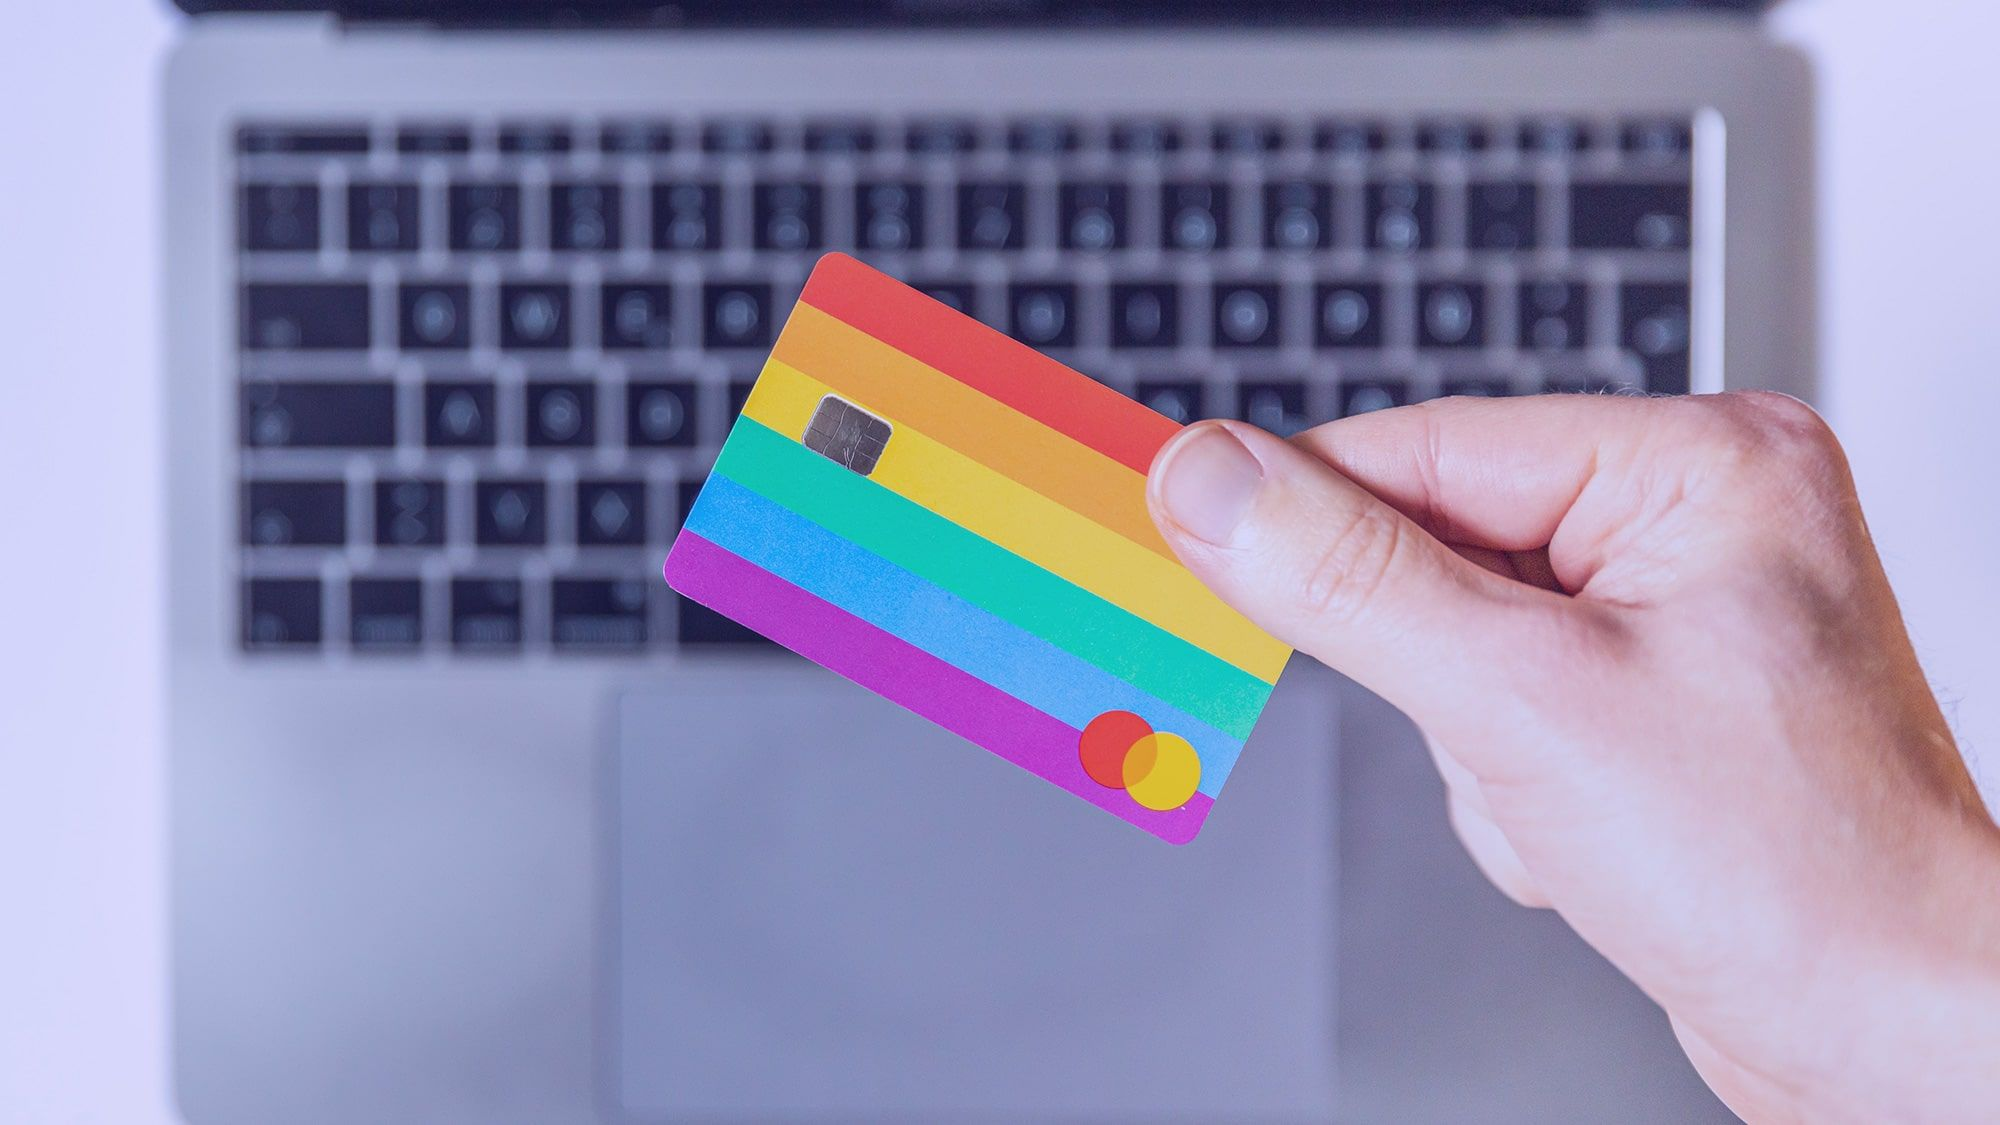 /pci-dss-compliance-requirements-and-how-to-meet-them-h91u3uq9 feature image